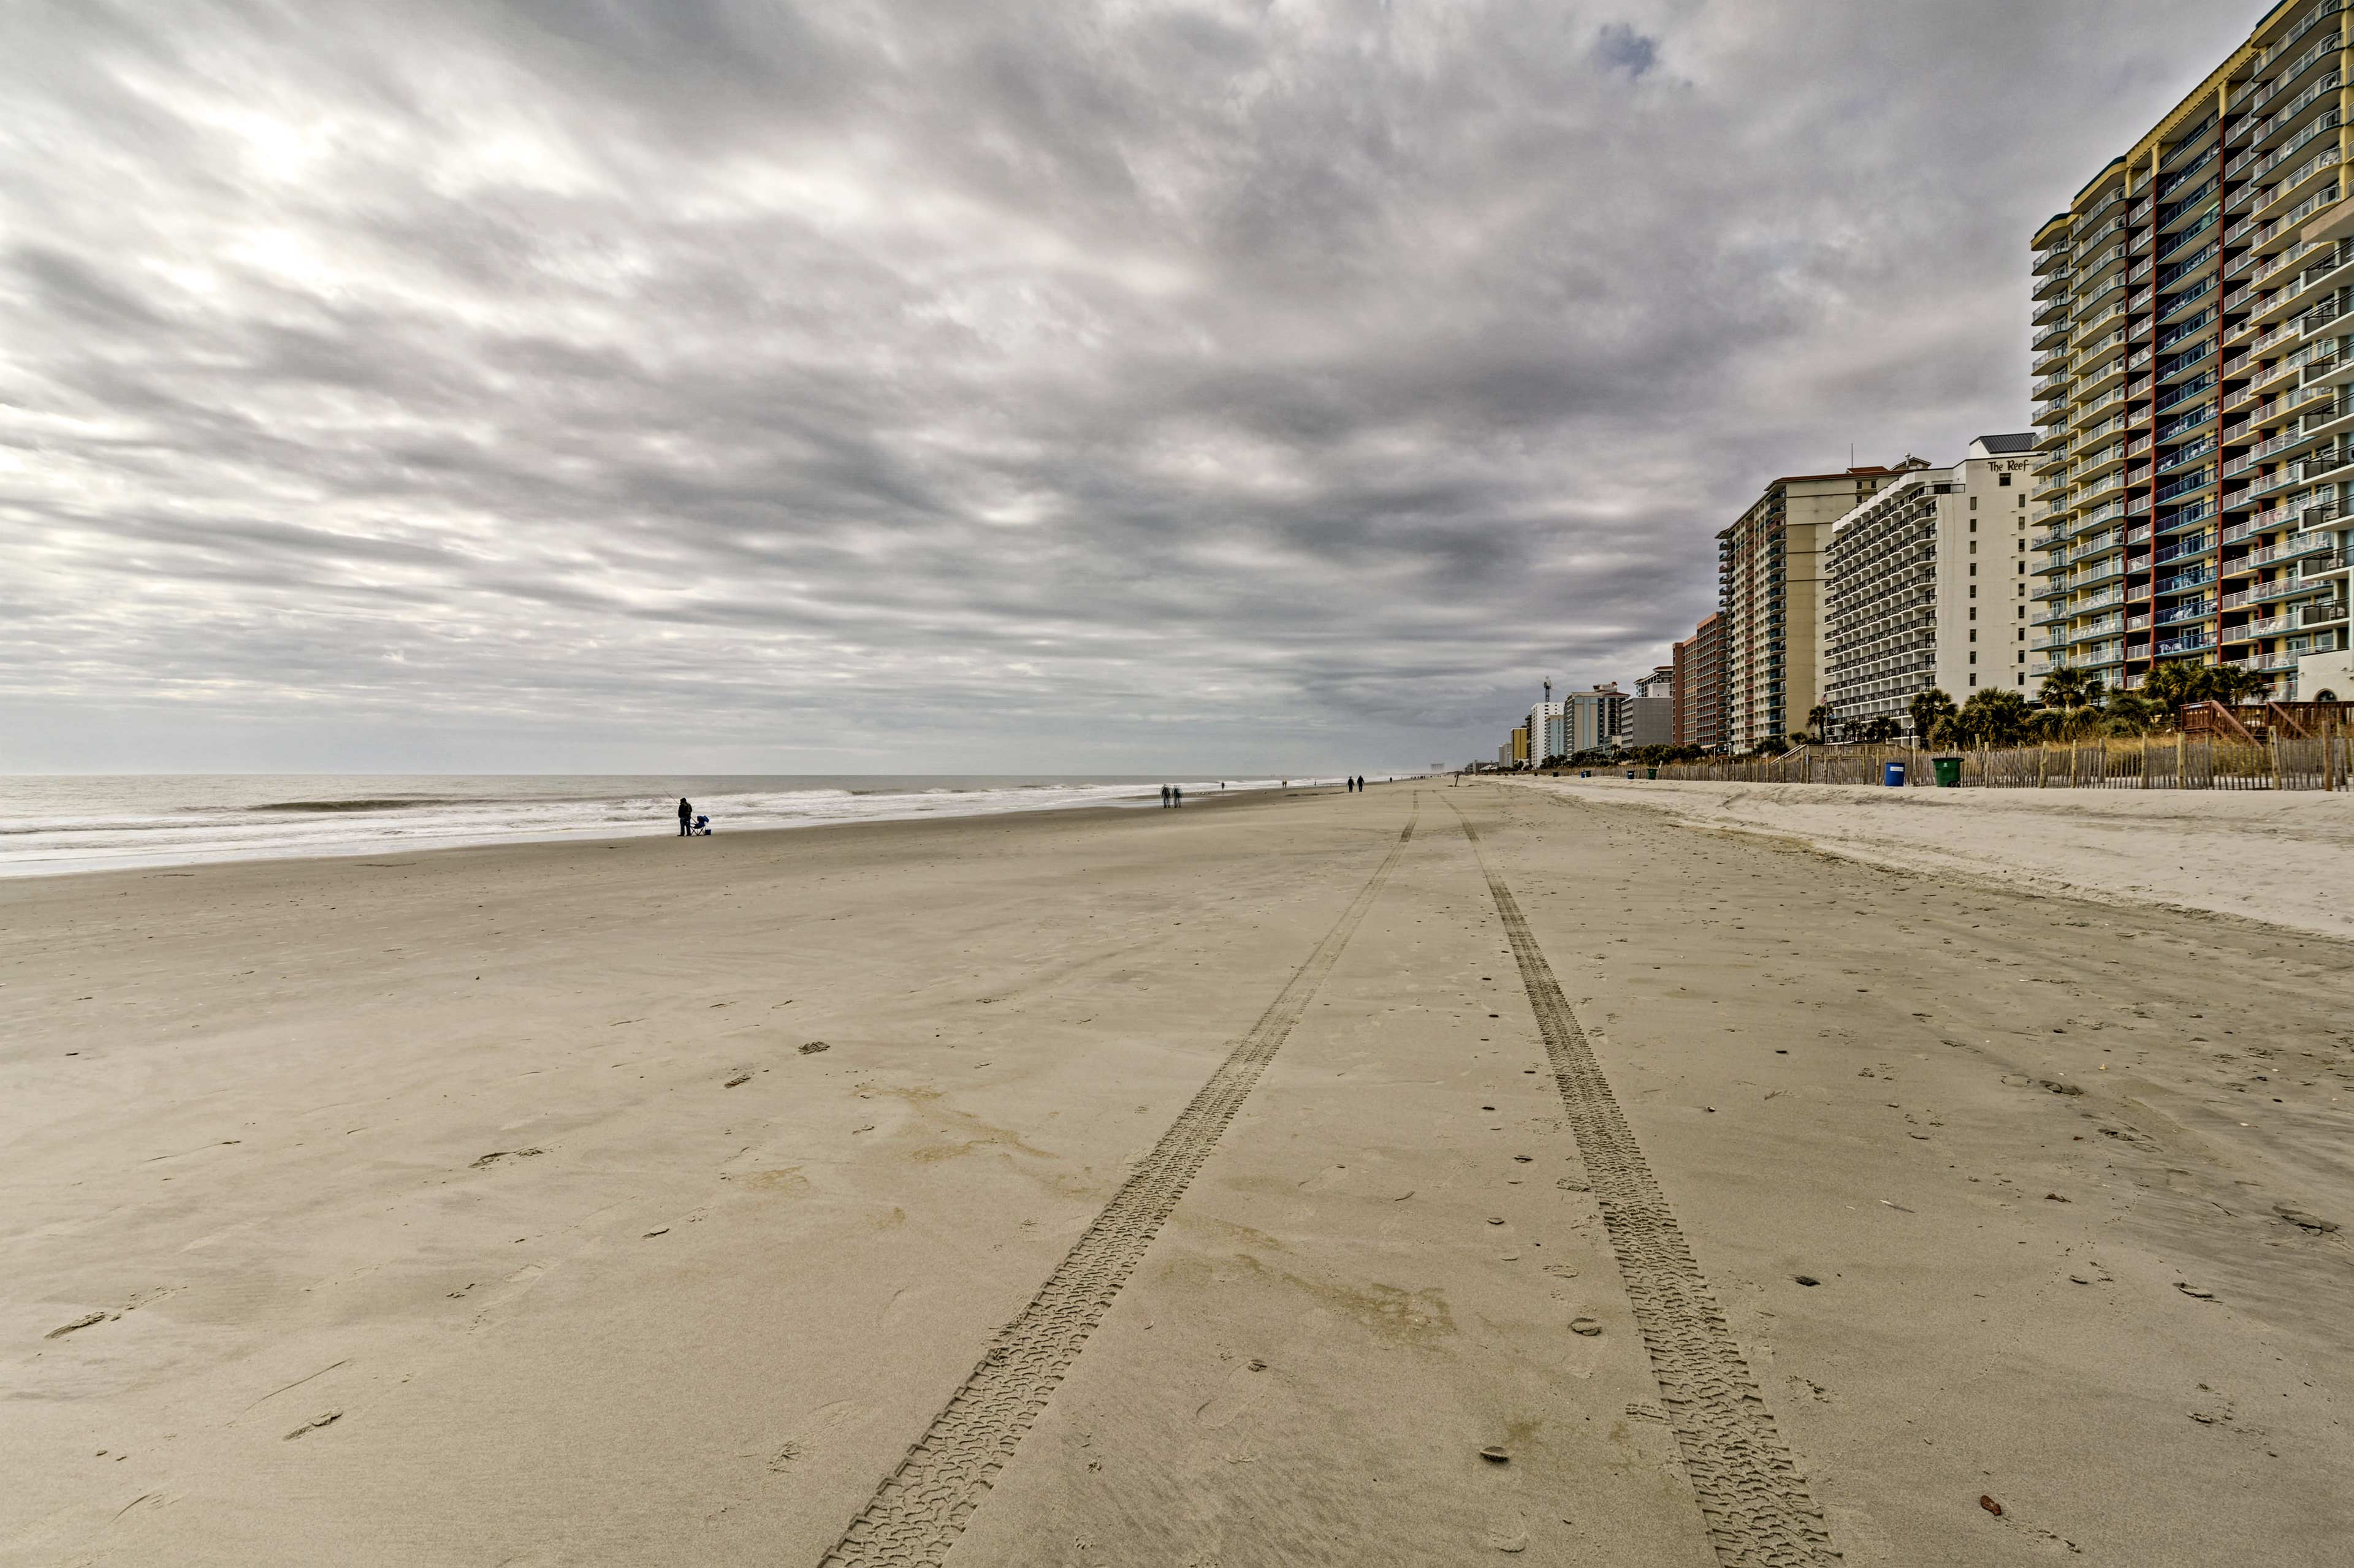 The beach is just a stroll away!